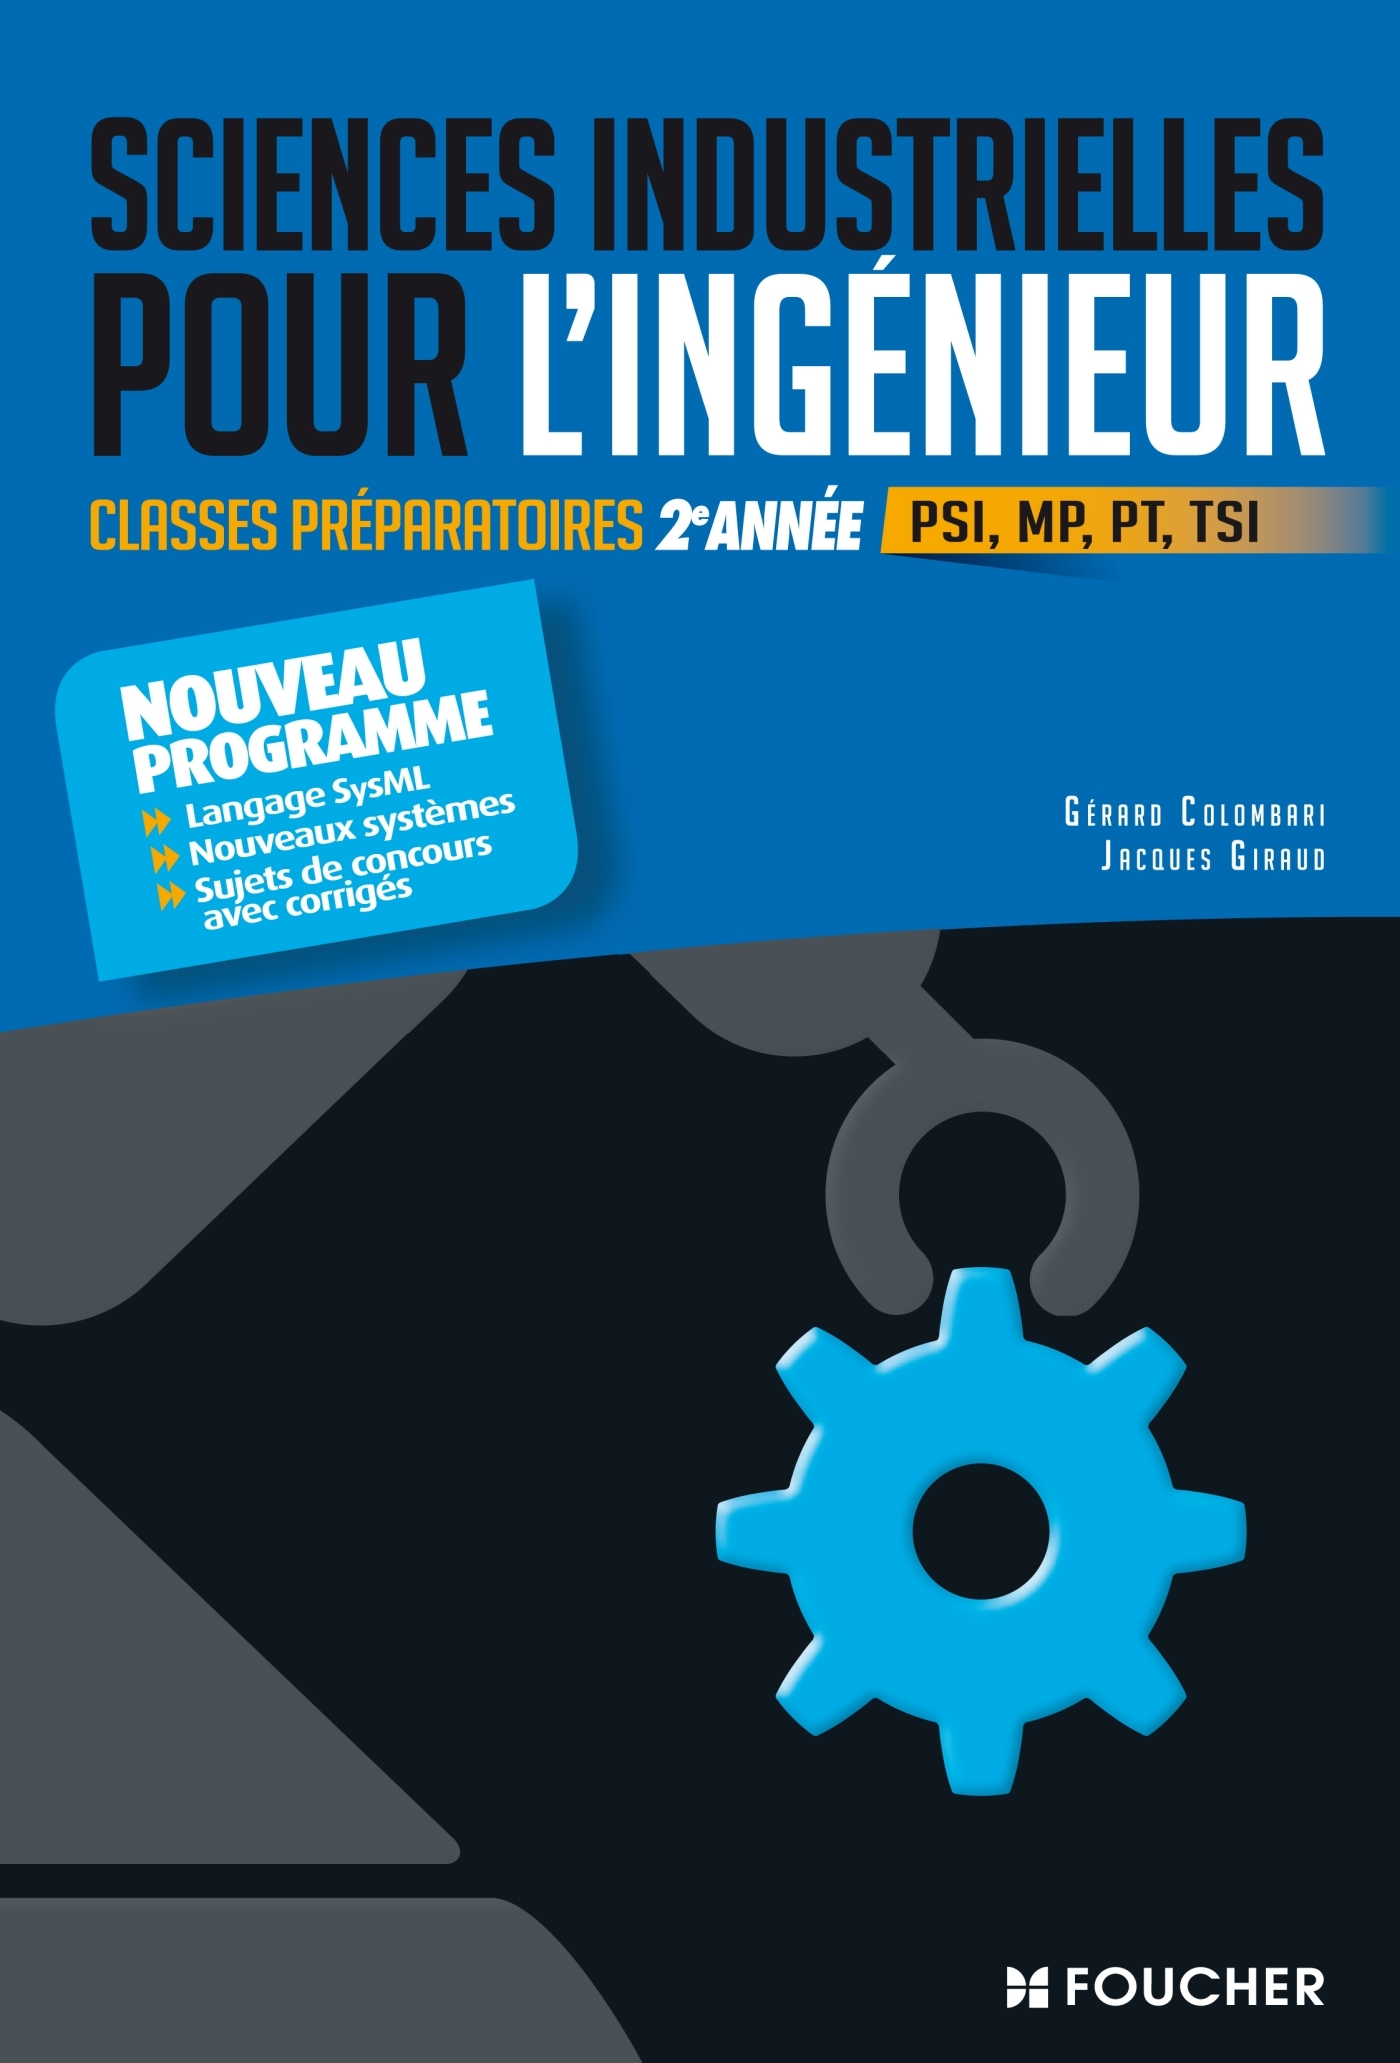 SCIENCES INDUSTRIELLES POUR L'INGENIEUR - CLASSES PREPARATOIRES SCIENTIFIQUES - 2E ANNEE